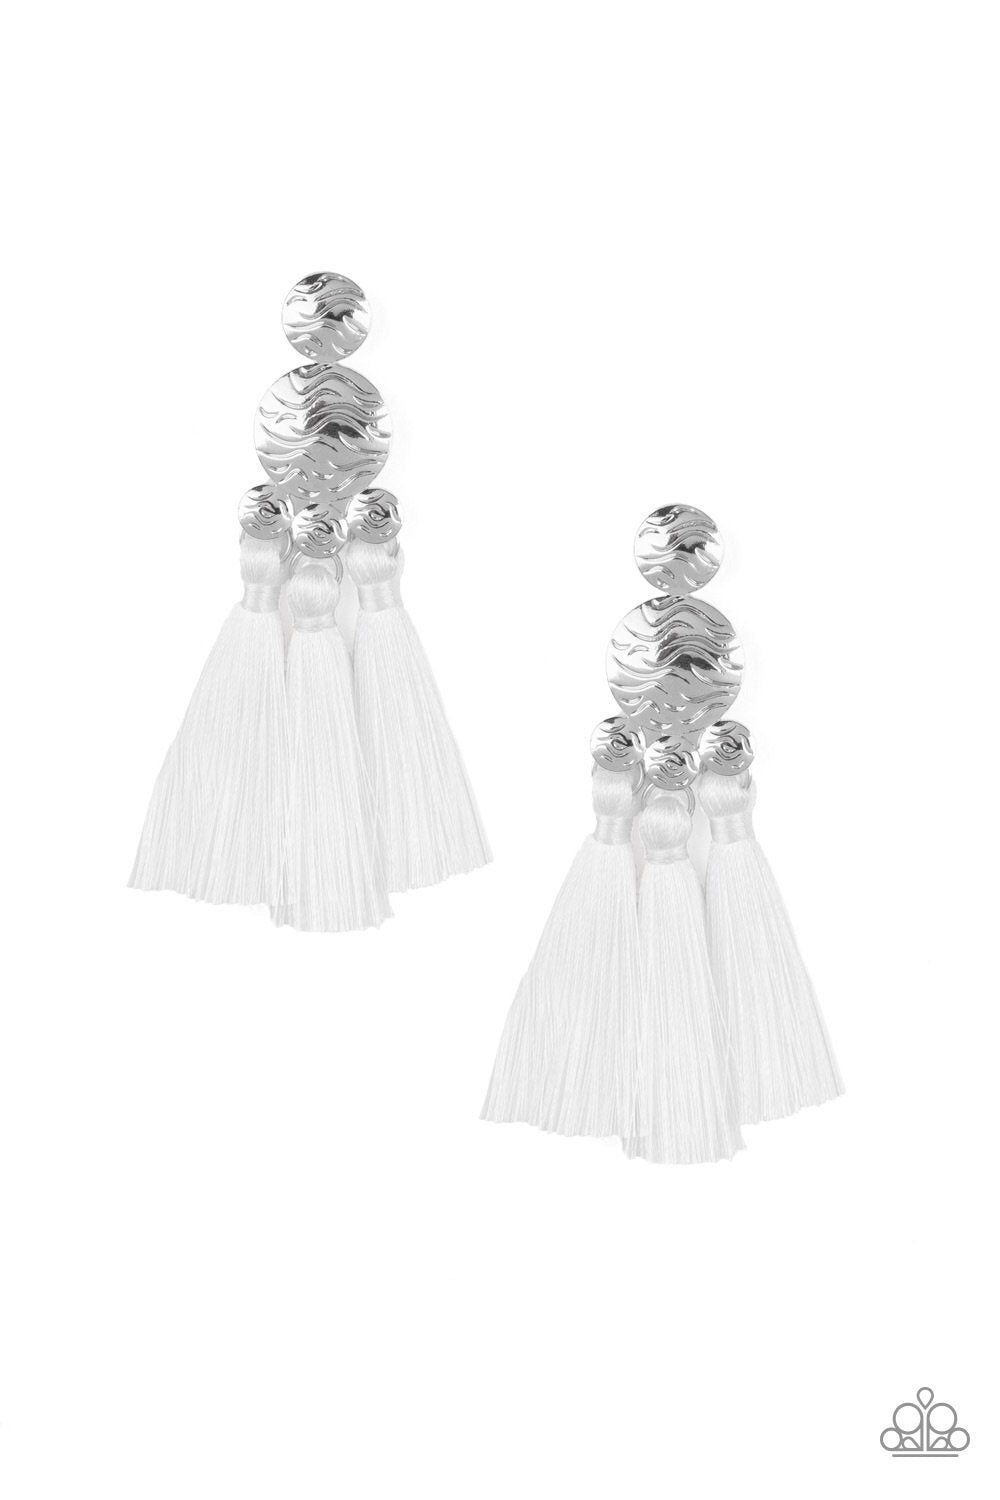 Taj Mahal Tourist - White Tassel Earrings - Paparazzi Accessories